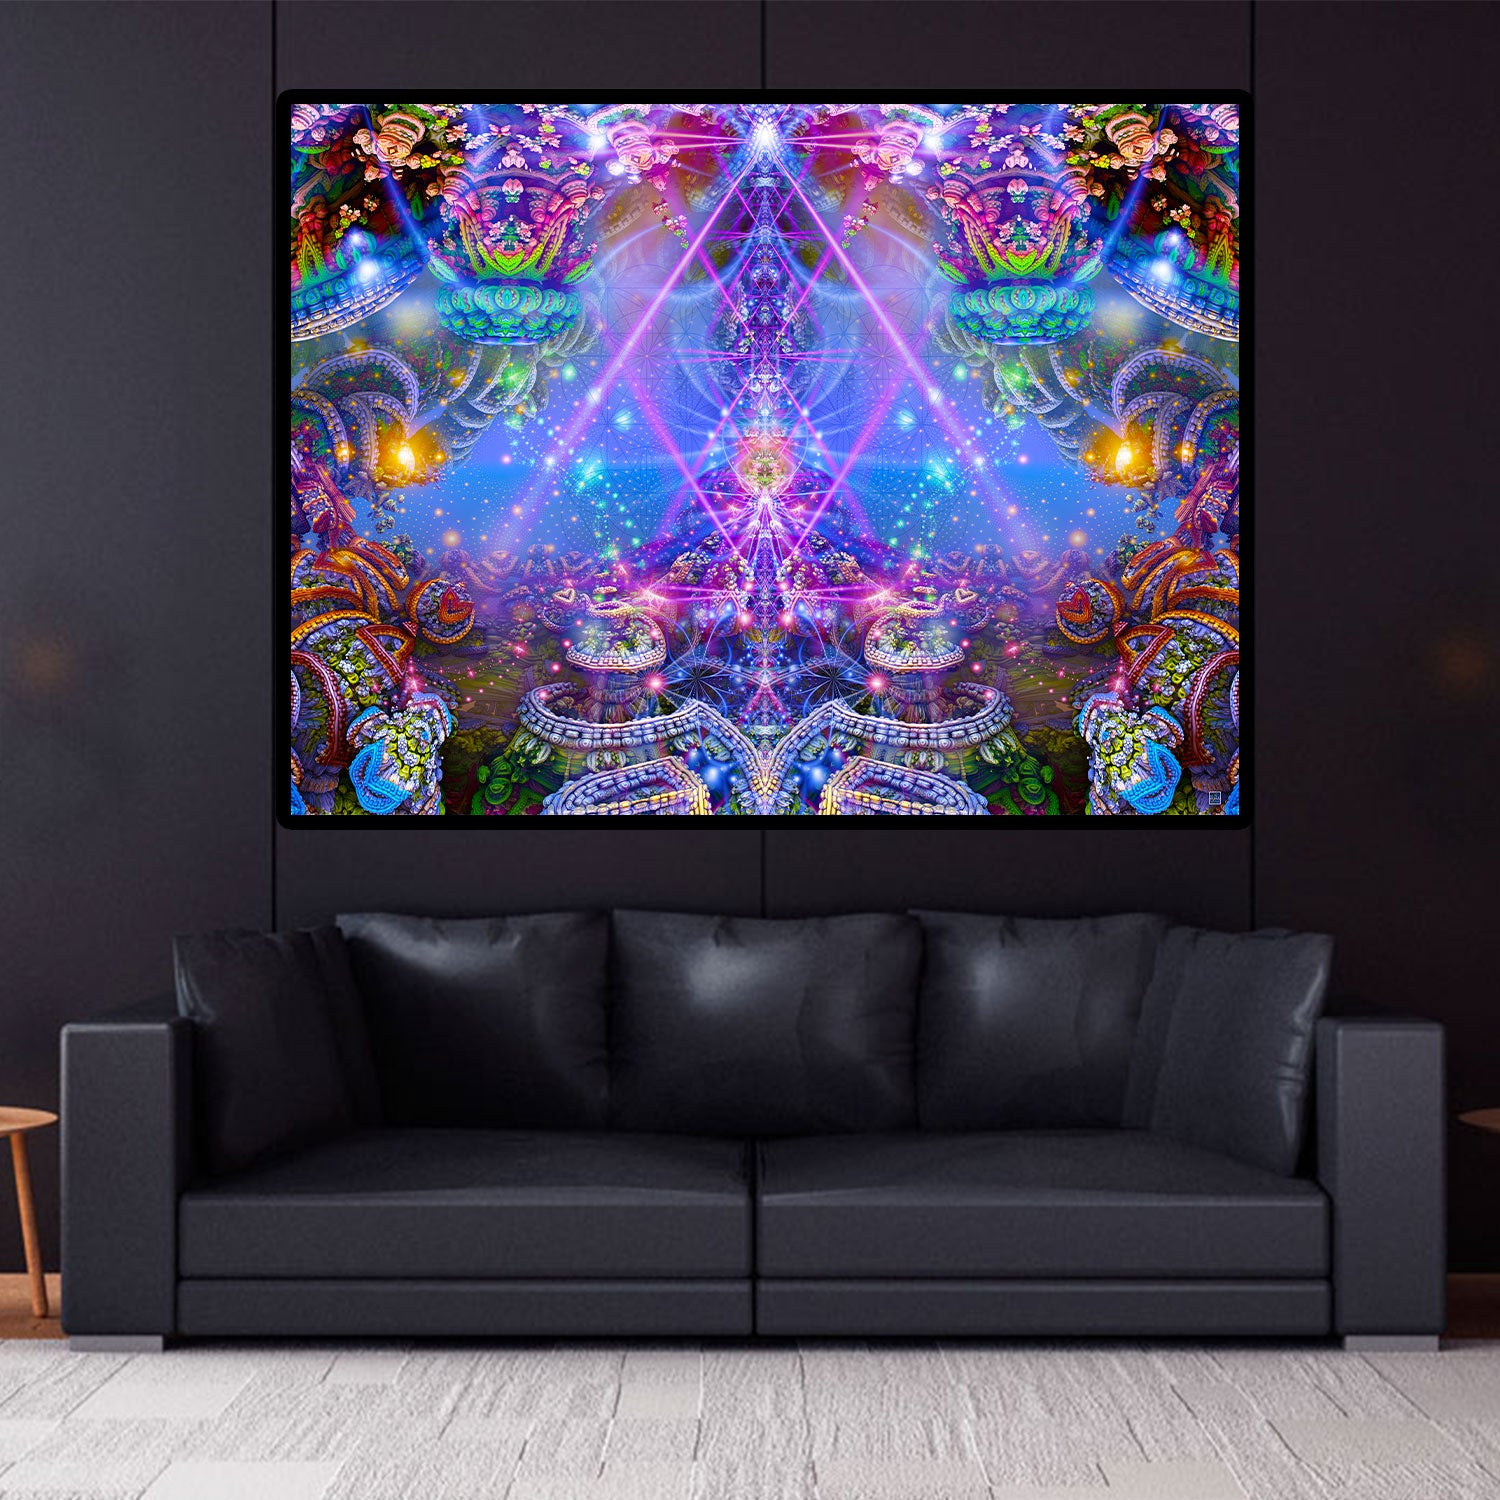 Trippy Tapestry | Psychedelic Wall Hanging | Psy | The Gates of Atlantis